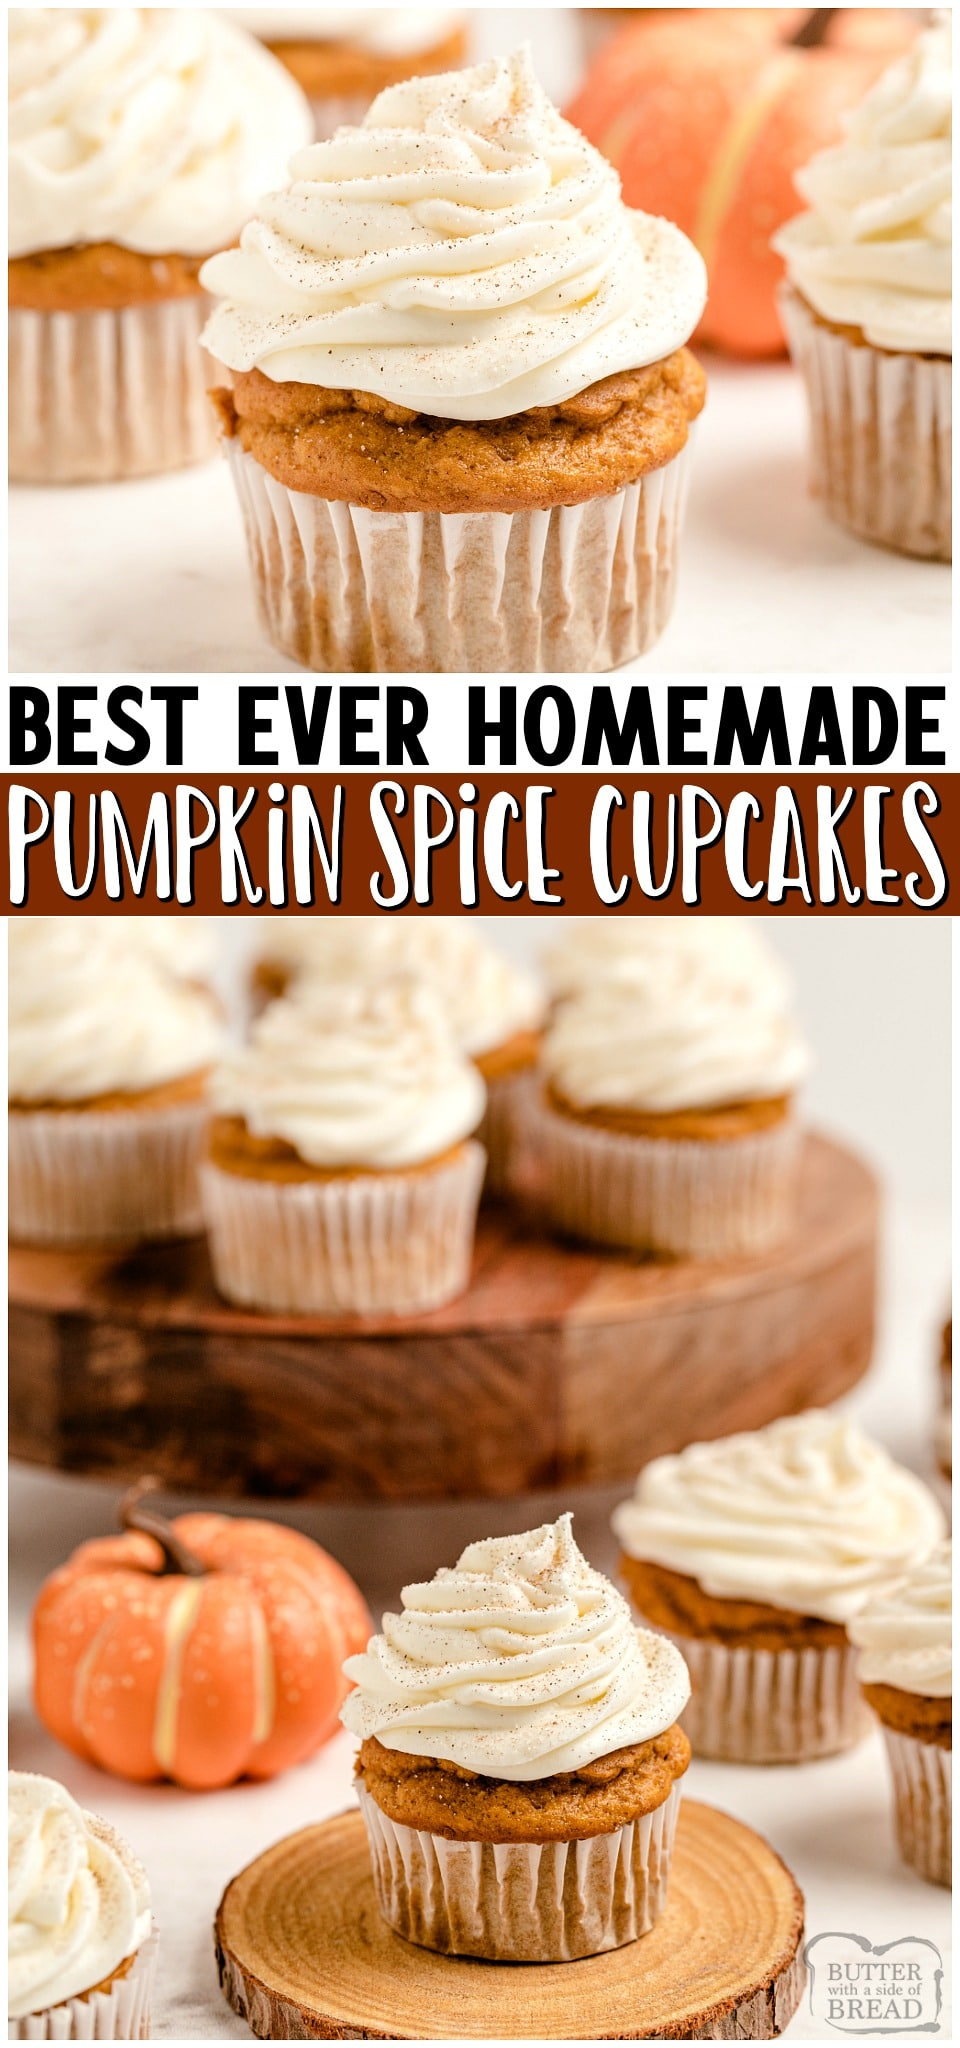 Pumpkin Spice Cupcakes with Cream Cheese Frosting are the perfect little treats for celebrating Fall! Easy recipe that starts with yellow cake mix and yields soft, moist perfectly spiced pumpkin cupcakes! #cupcakes #pumpkin #pumpkinspice #psl #baking #dessert #easyrecipe from BUTTER WITH A SIDE OF BREAD